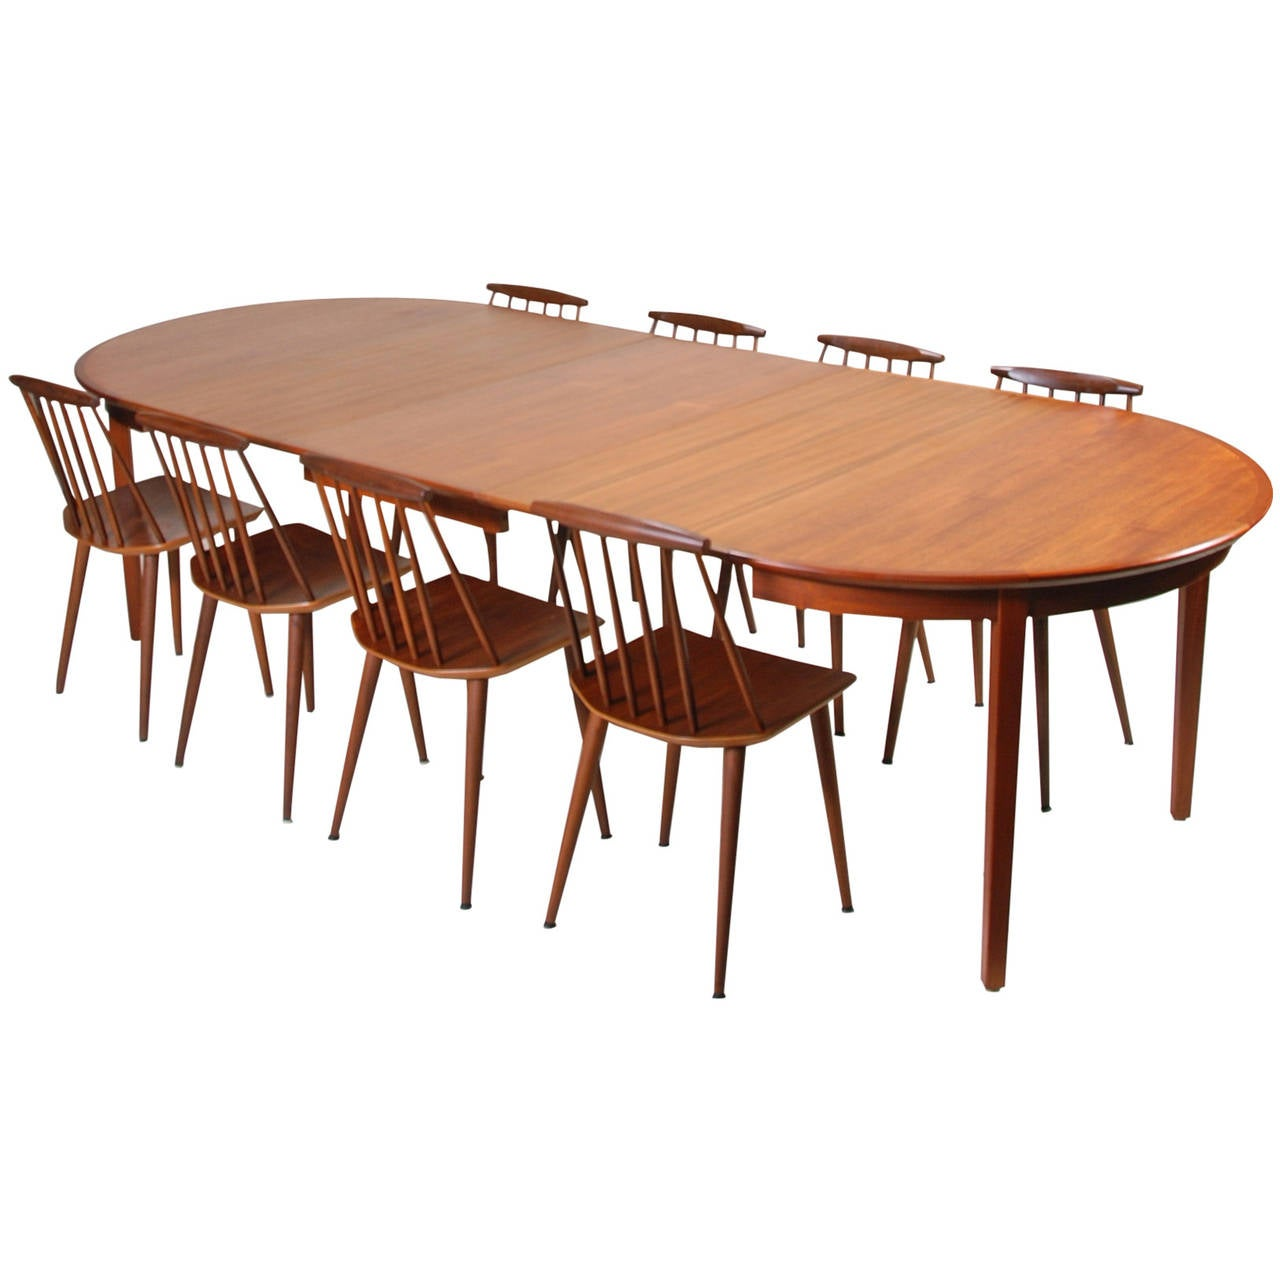 Large danish modern dining table in teak at 1stdibs for Modern large dining table